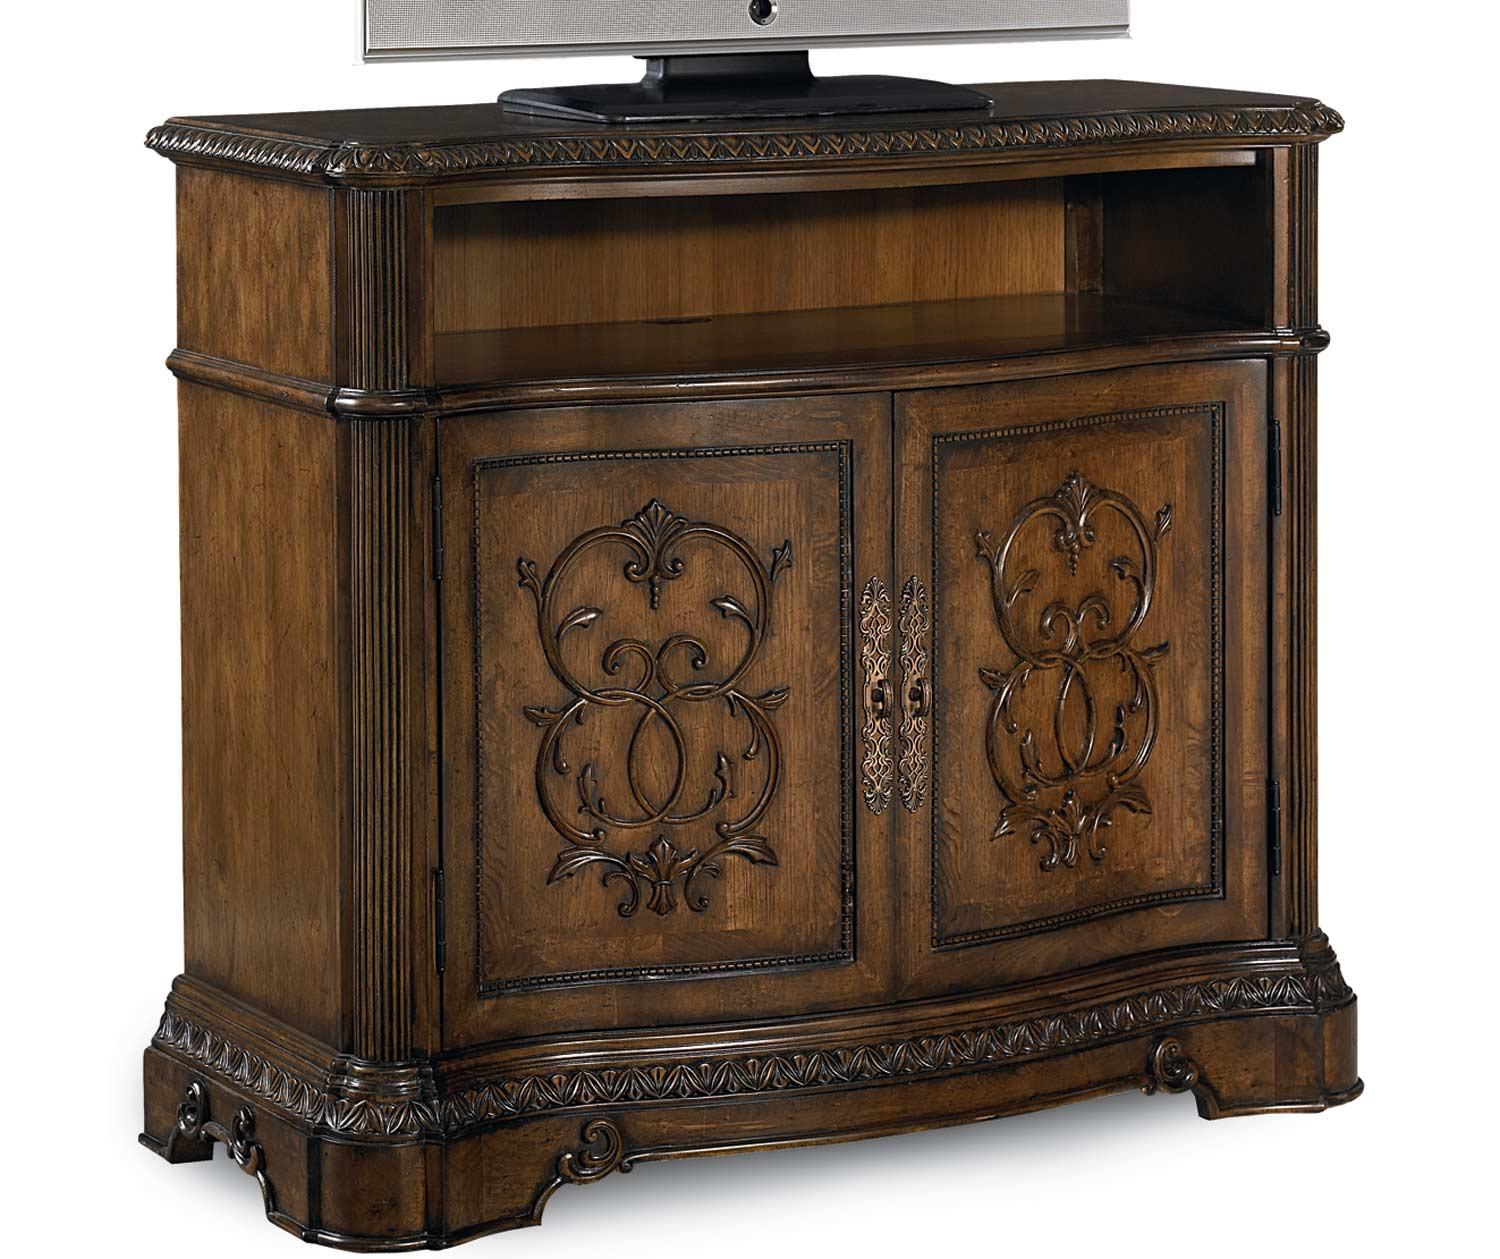 Legacy Classic Pemberleigh Media Chest - Brandy/Burnished Edges